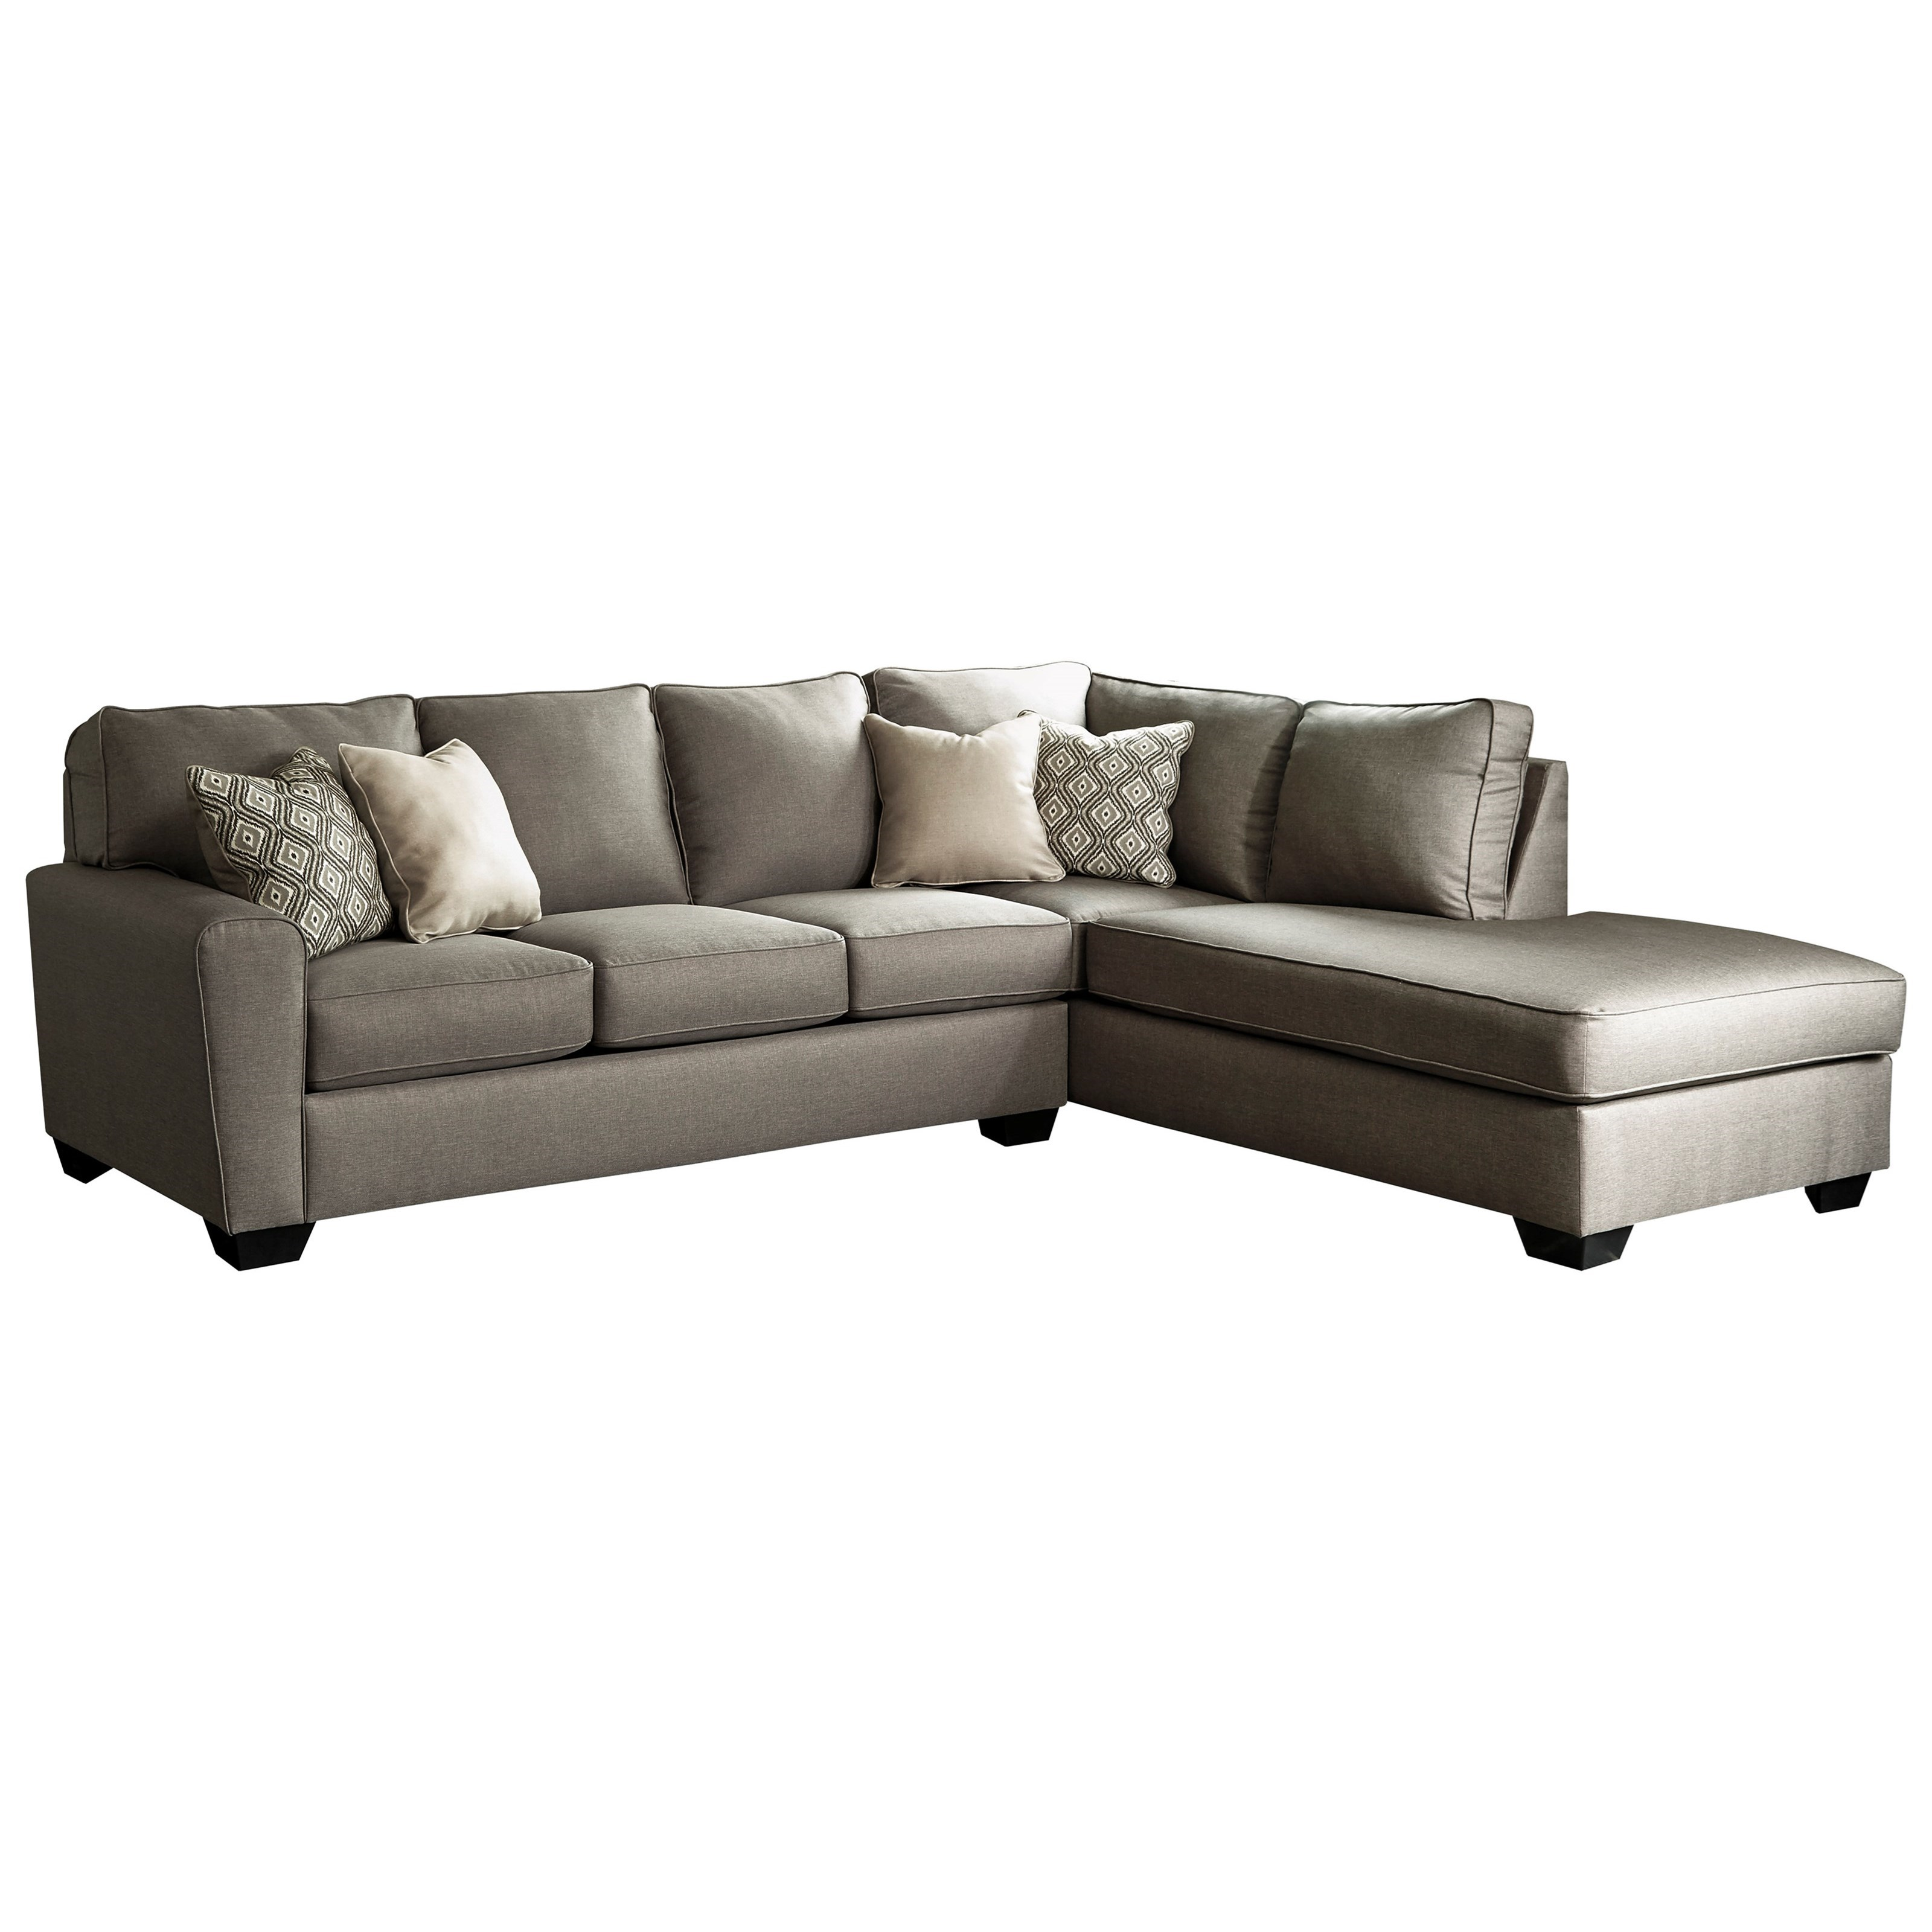 Calicho Sectional with Right Chaise by Benchcraft at Value City Furniture